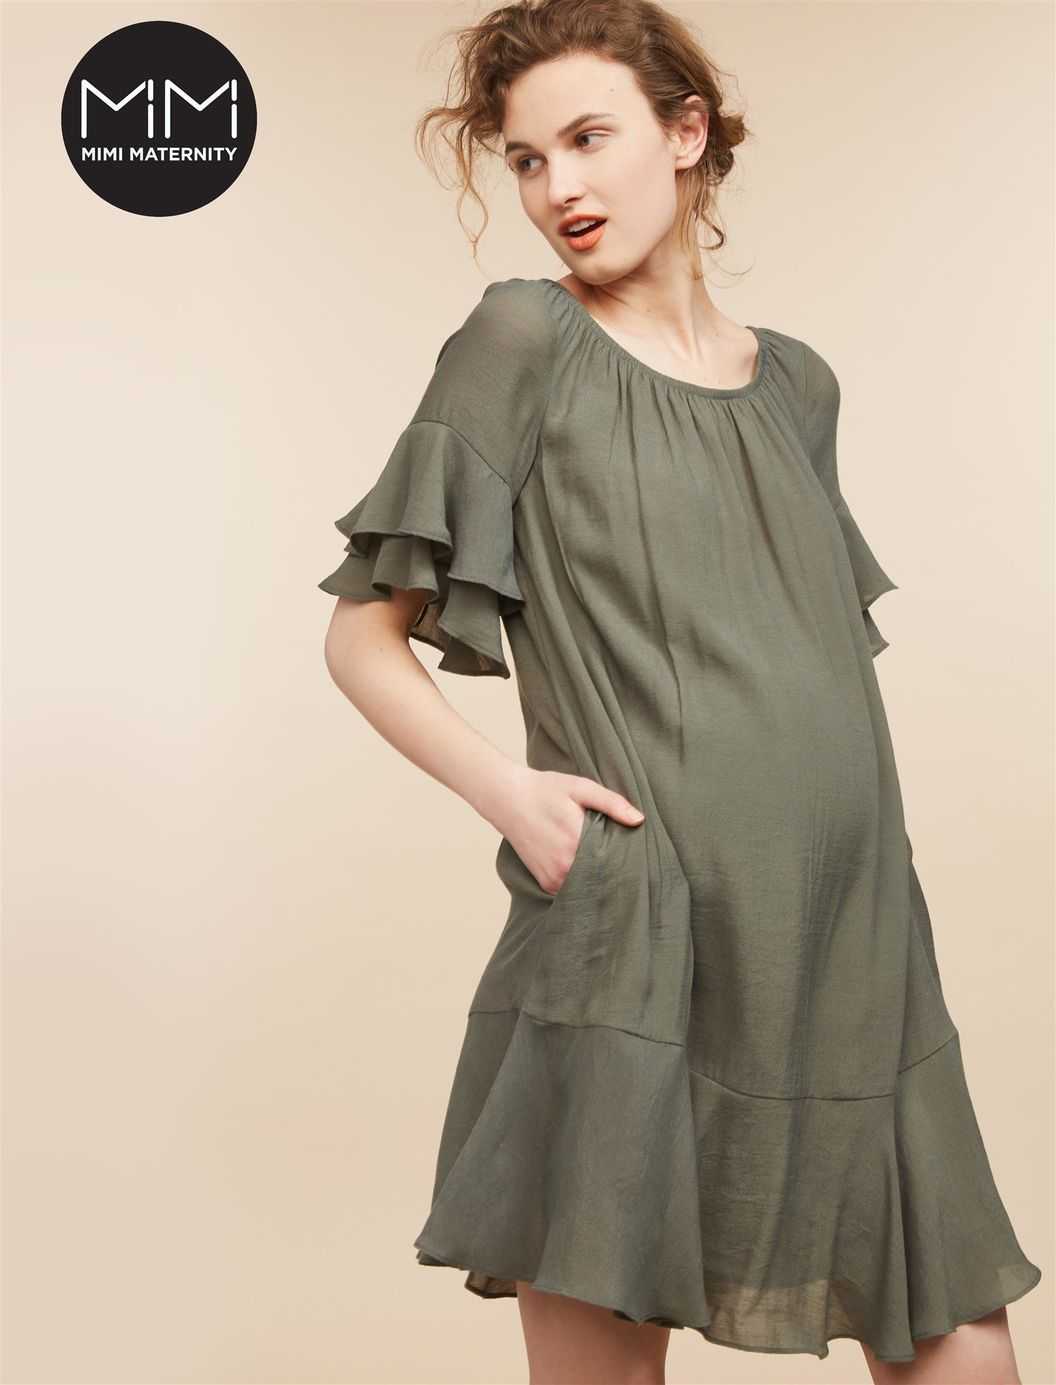 Mimi ruffle sleeve maternity dress ftc disclosure this is an